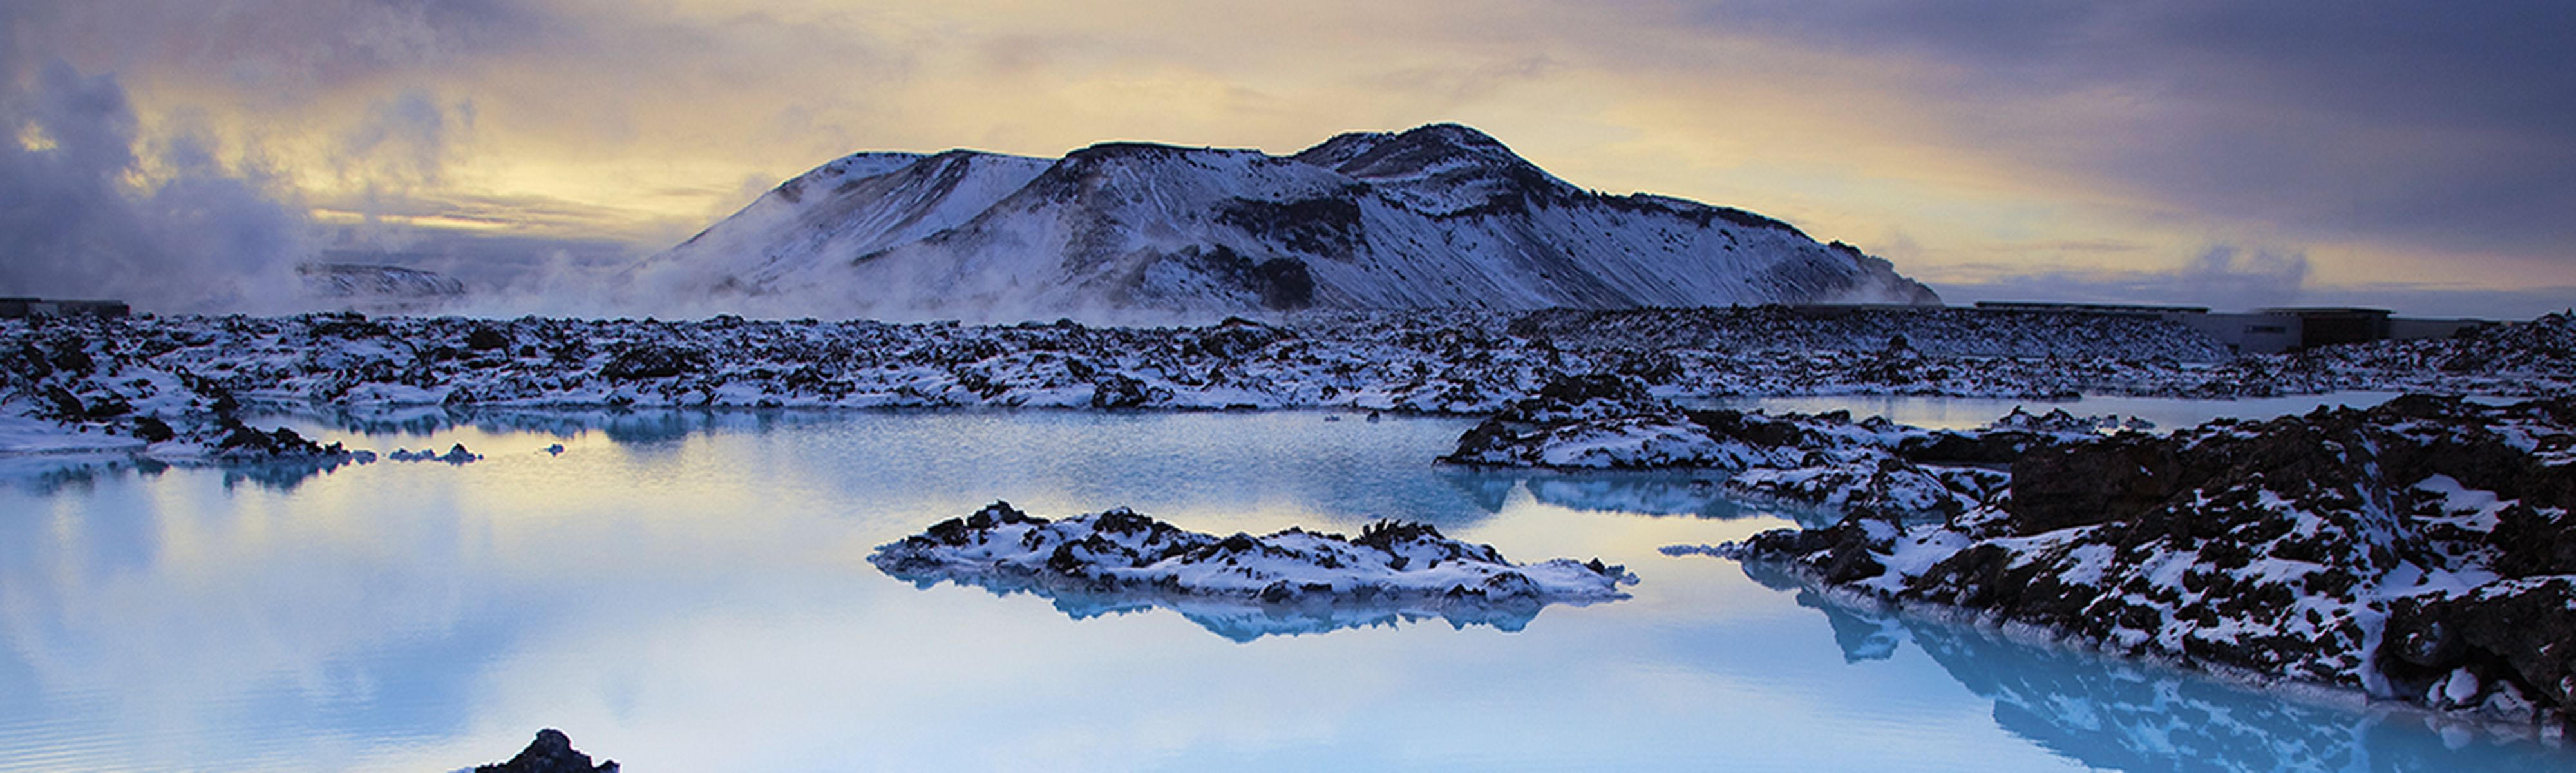 glaciers covered in snow surrounding a lagoon in iceland